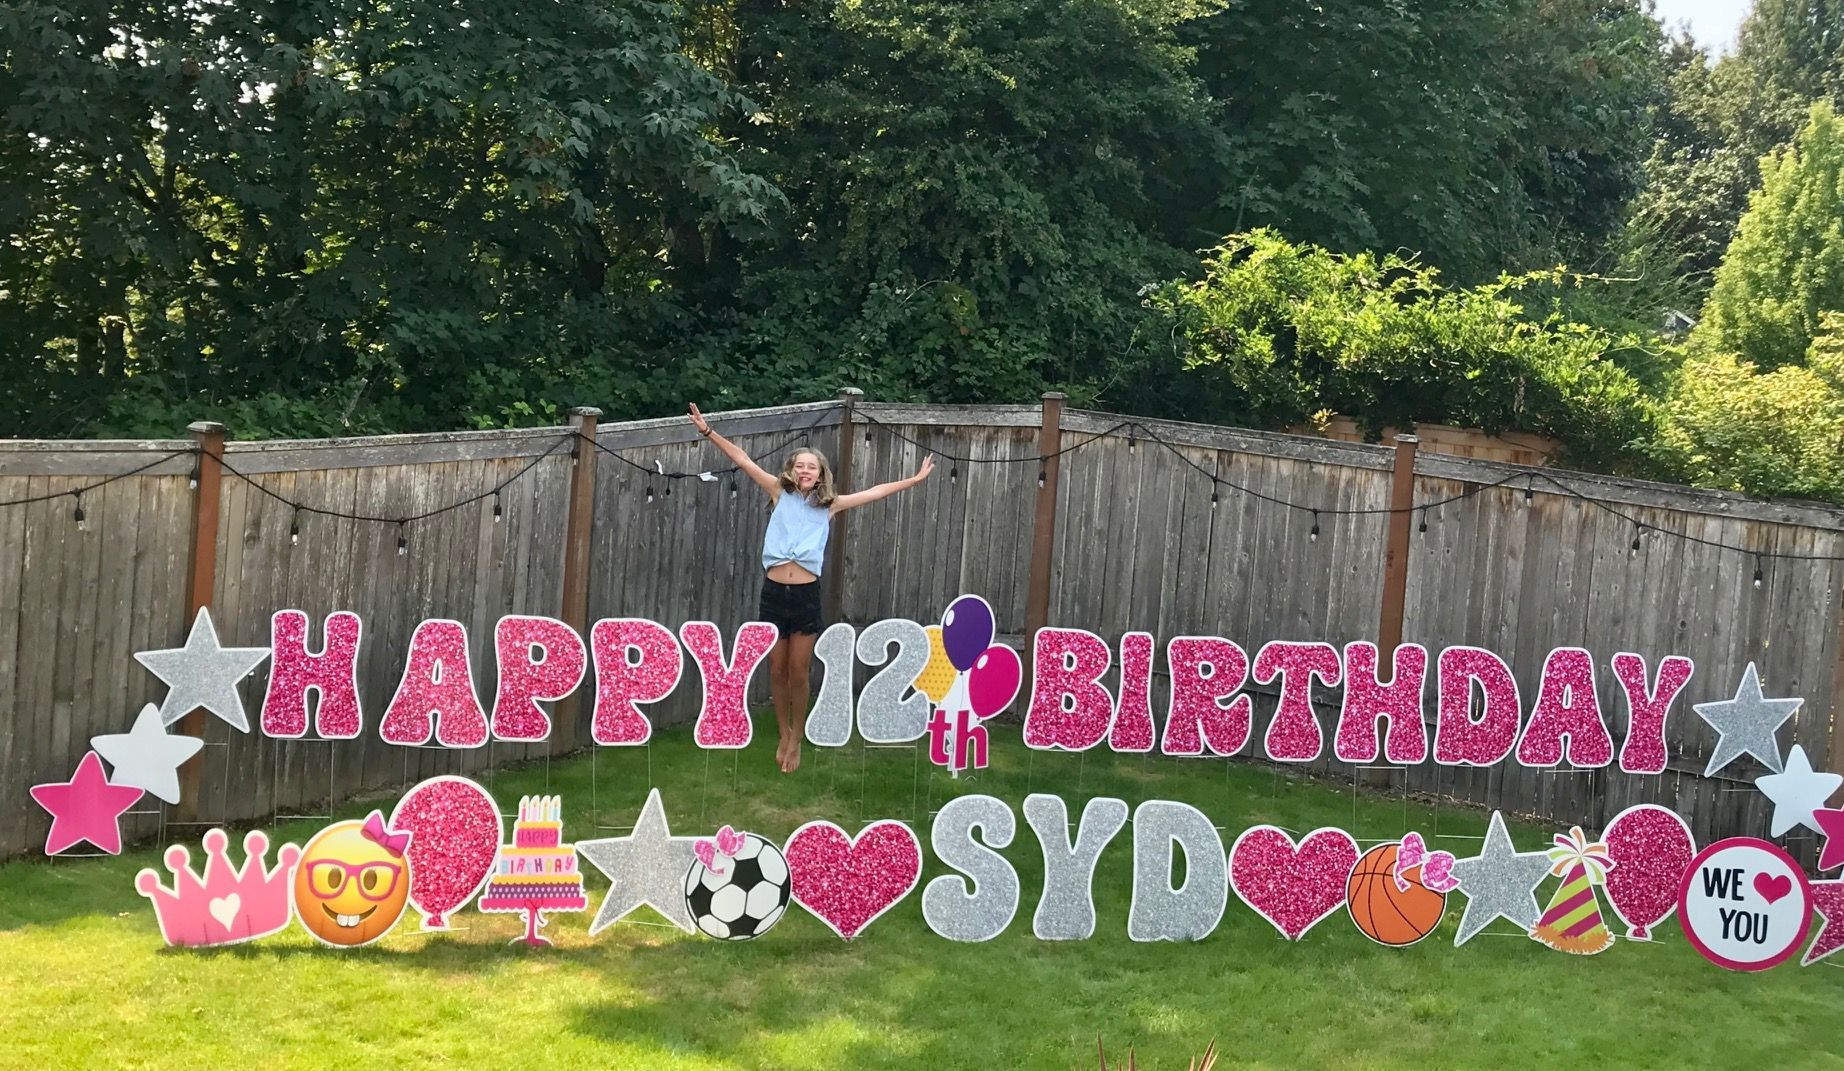 Yard Announcements loves to help you celebrate with